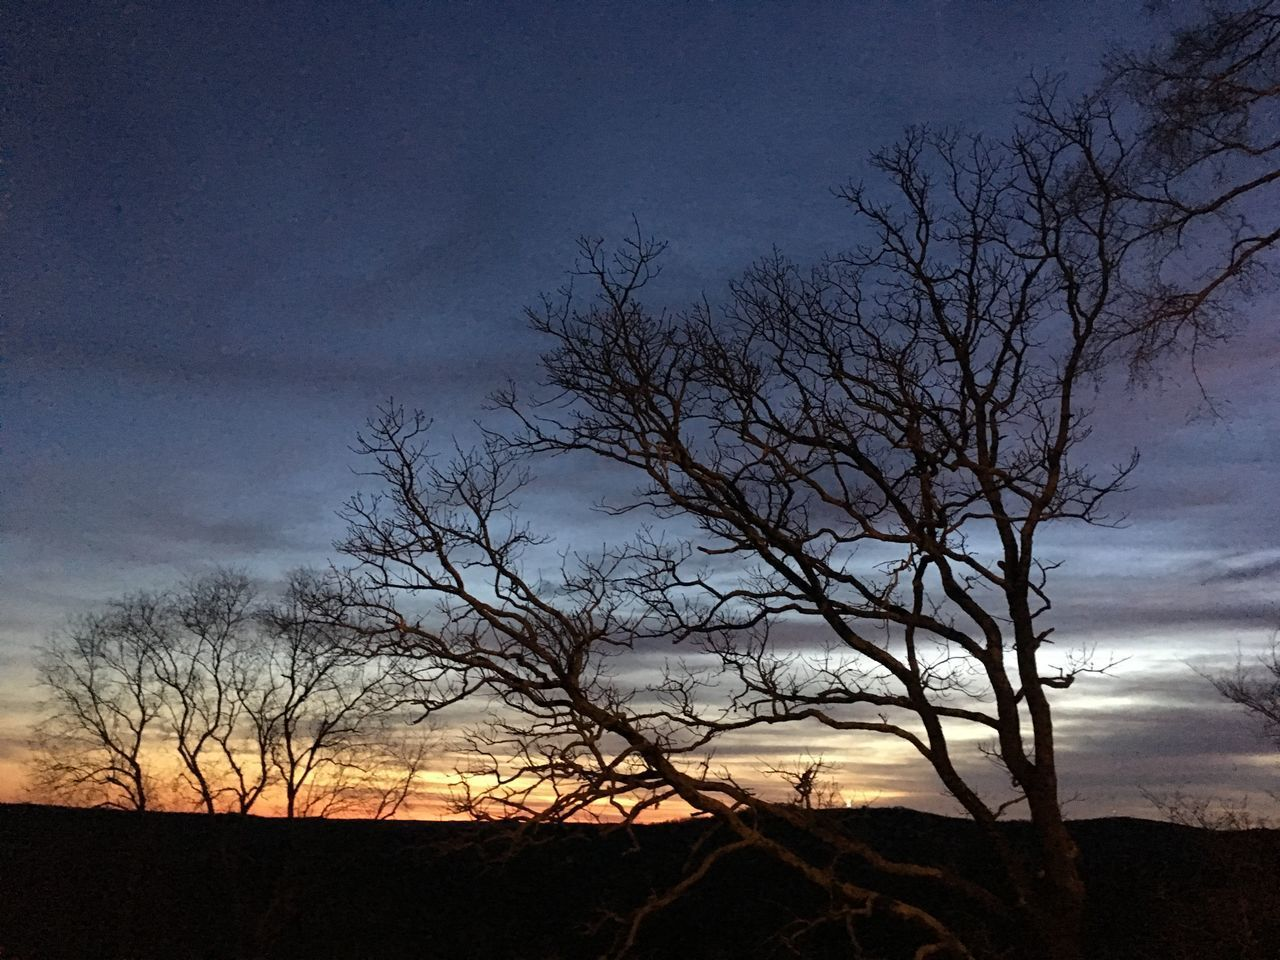 sky, tree, cloud - sky, bare tree, silhouette, beauty in nature, sunset, tranquility, tranquil scene, scenics - nature, nature, plant, no people, dusk, land, branch, non-urban scene, landscape, environment, outdoors